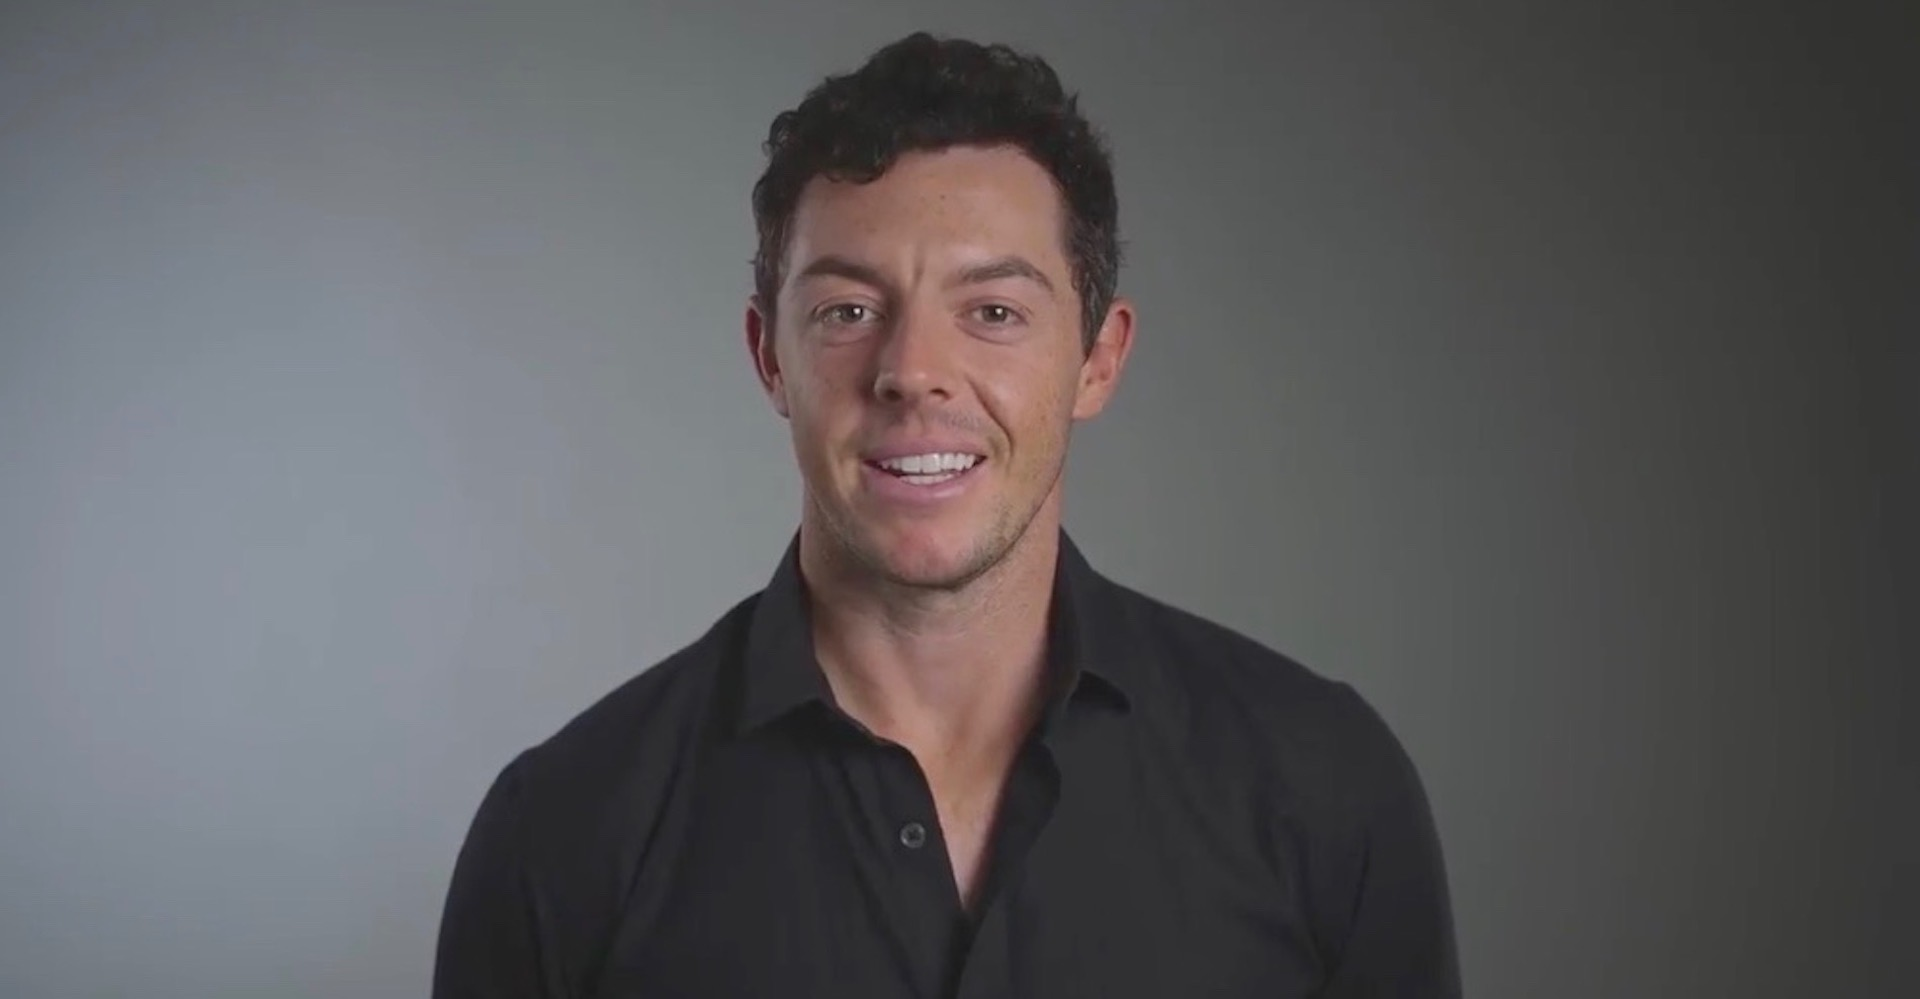 Rory McIlroy now 6th highest paid